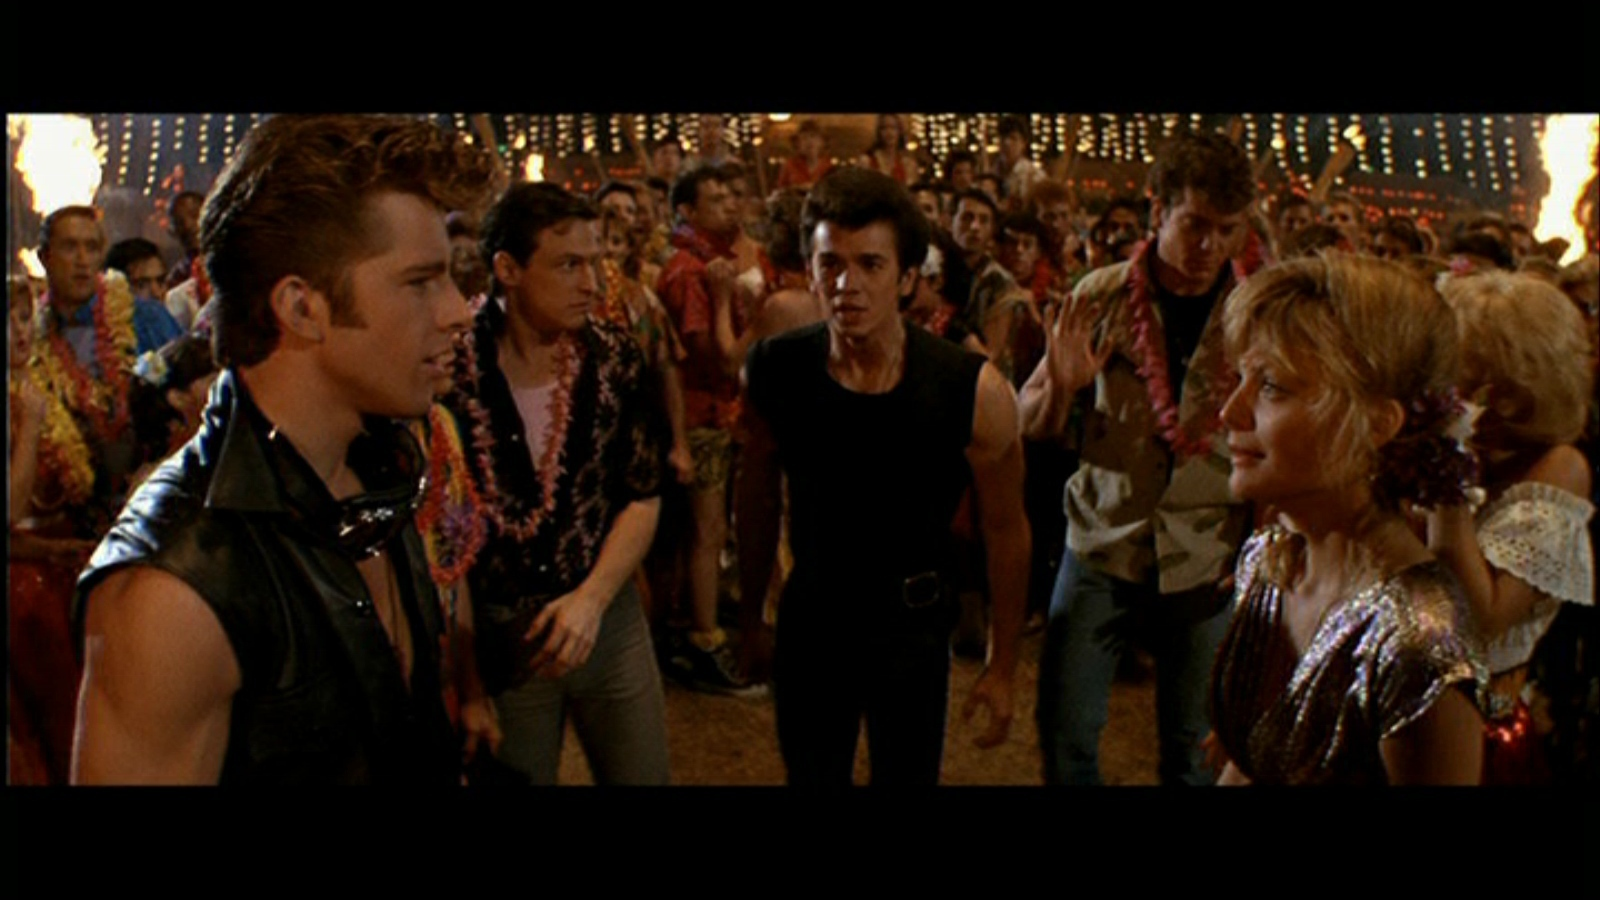 grease 2 grease 2 image 6068748 fanpop